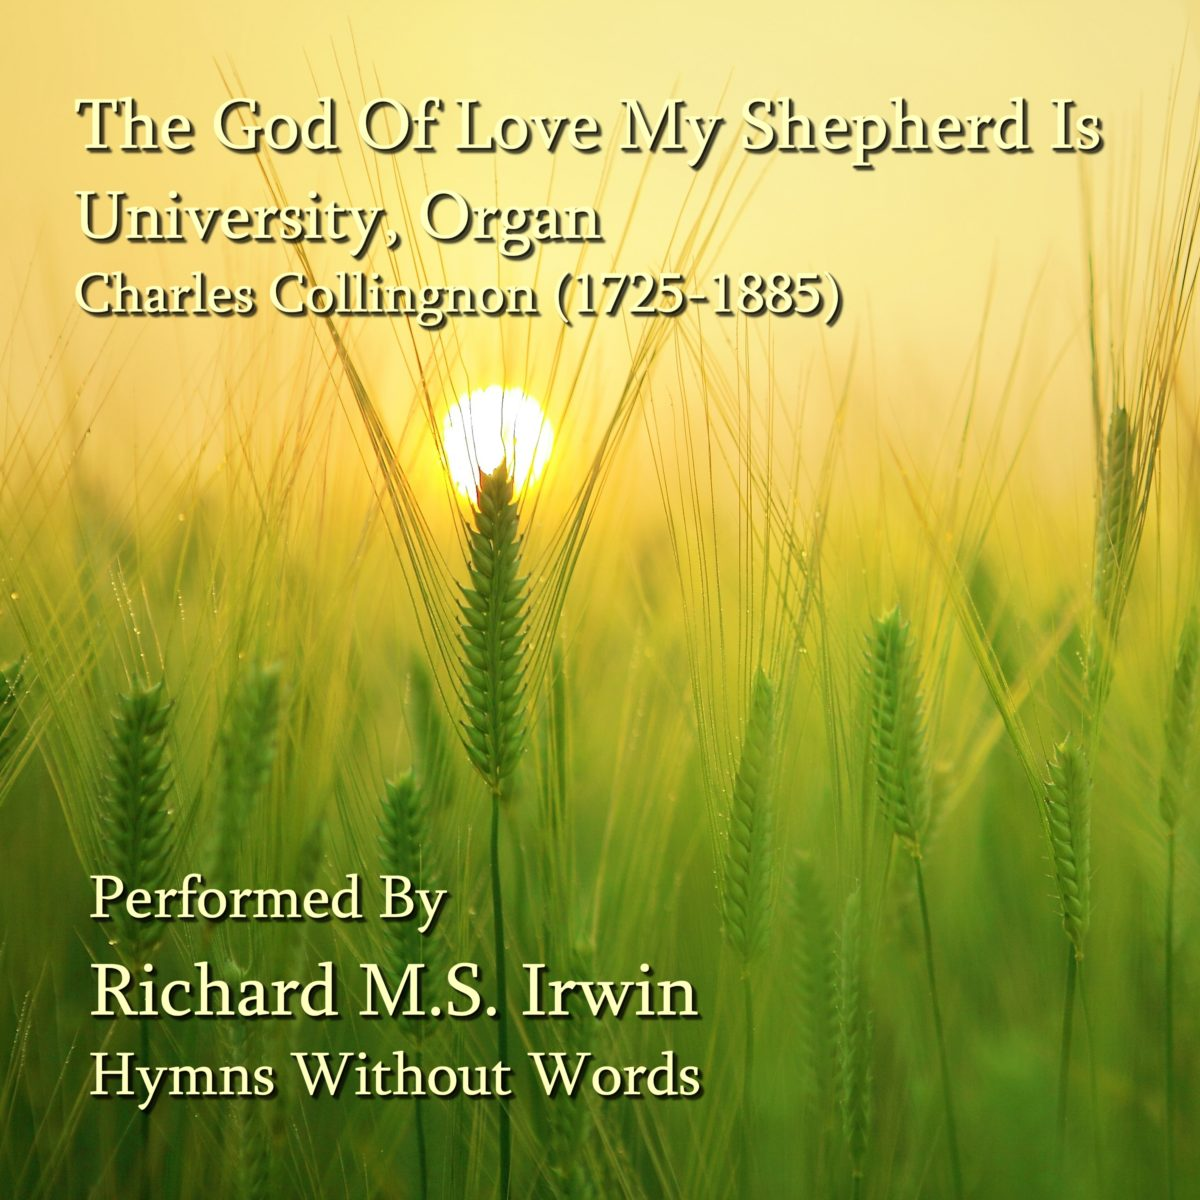 The God Of Love My Shepherd Is (University – 5 Verses) – Organ